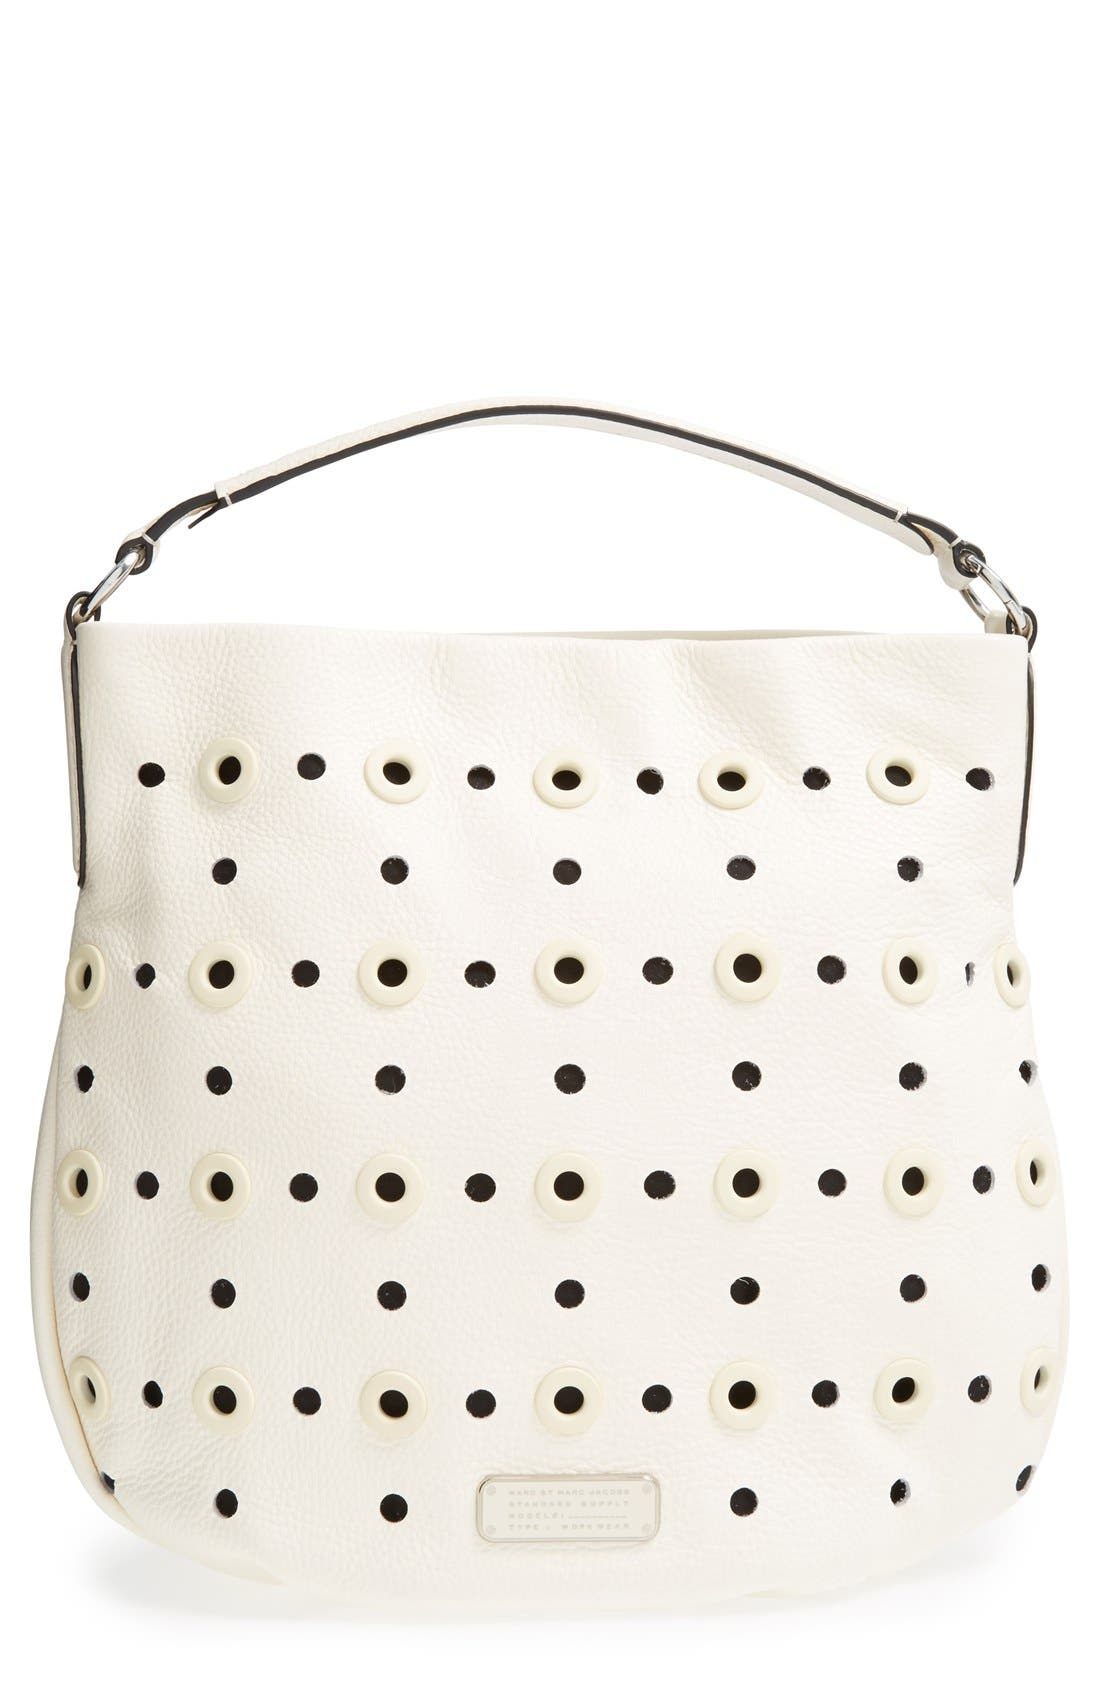 Main Image - MARC BY MARC JACOBS 'New Q Hillier - Grommet' Hobo